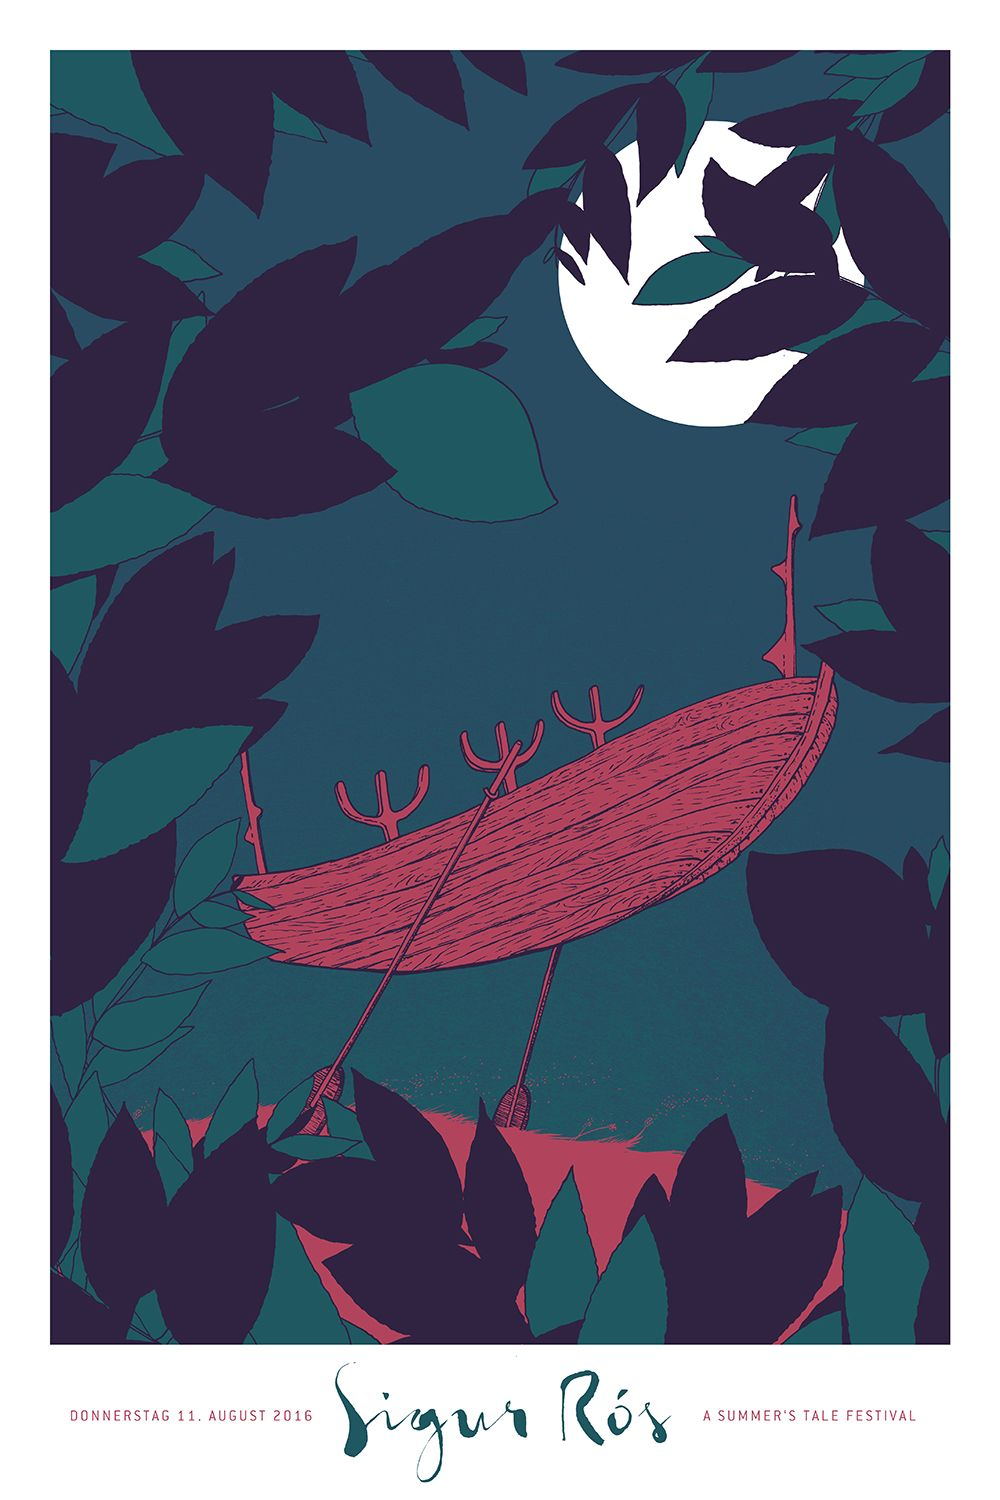 Alexander Hankes New Poster For Sigur Rs Is One Of My Favorites The Month Its A 16 X 235 Screenprint Has An Edition 100 And Costs EUR35 Visit